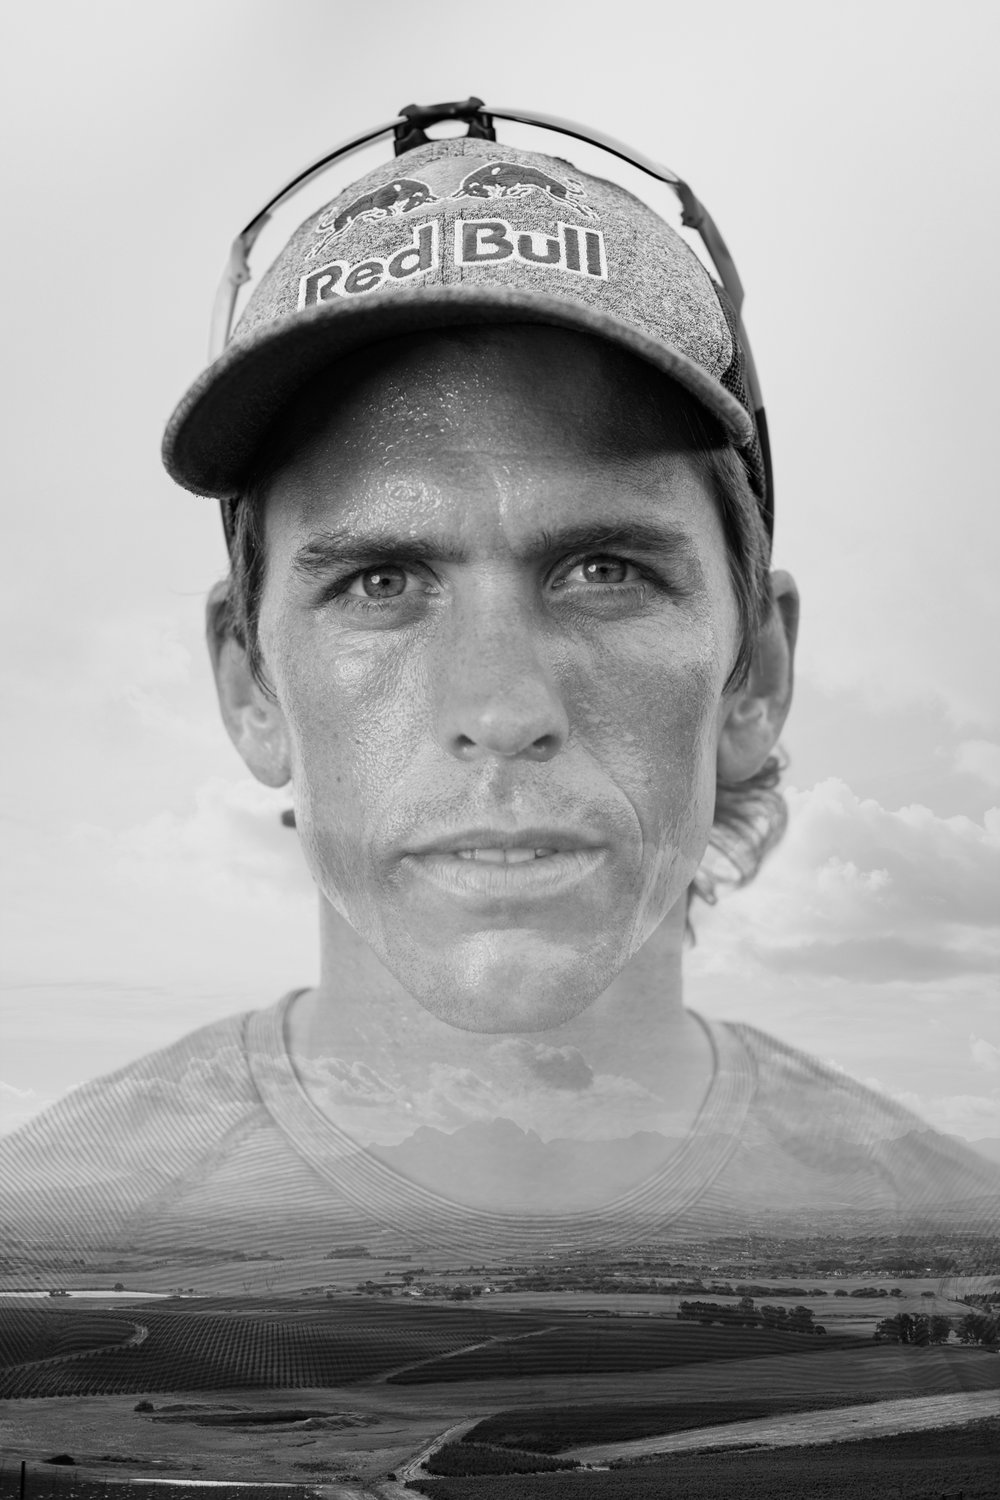 Ryan Sandes poses for a portrait at Meerendal in Cape Town, South Africa, on February 27, 2019.Editor's note: double exposure.